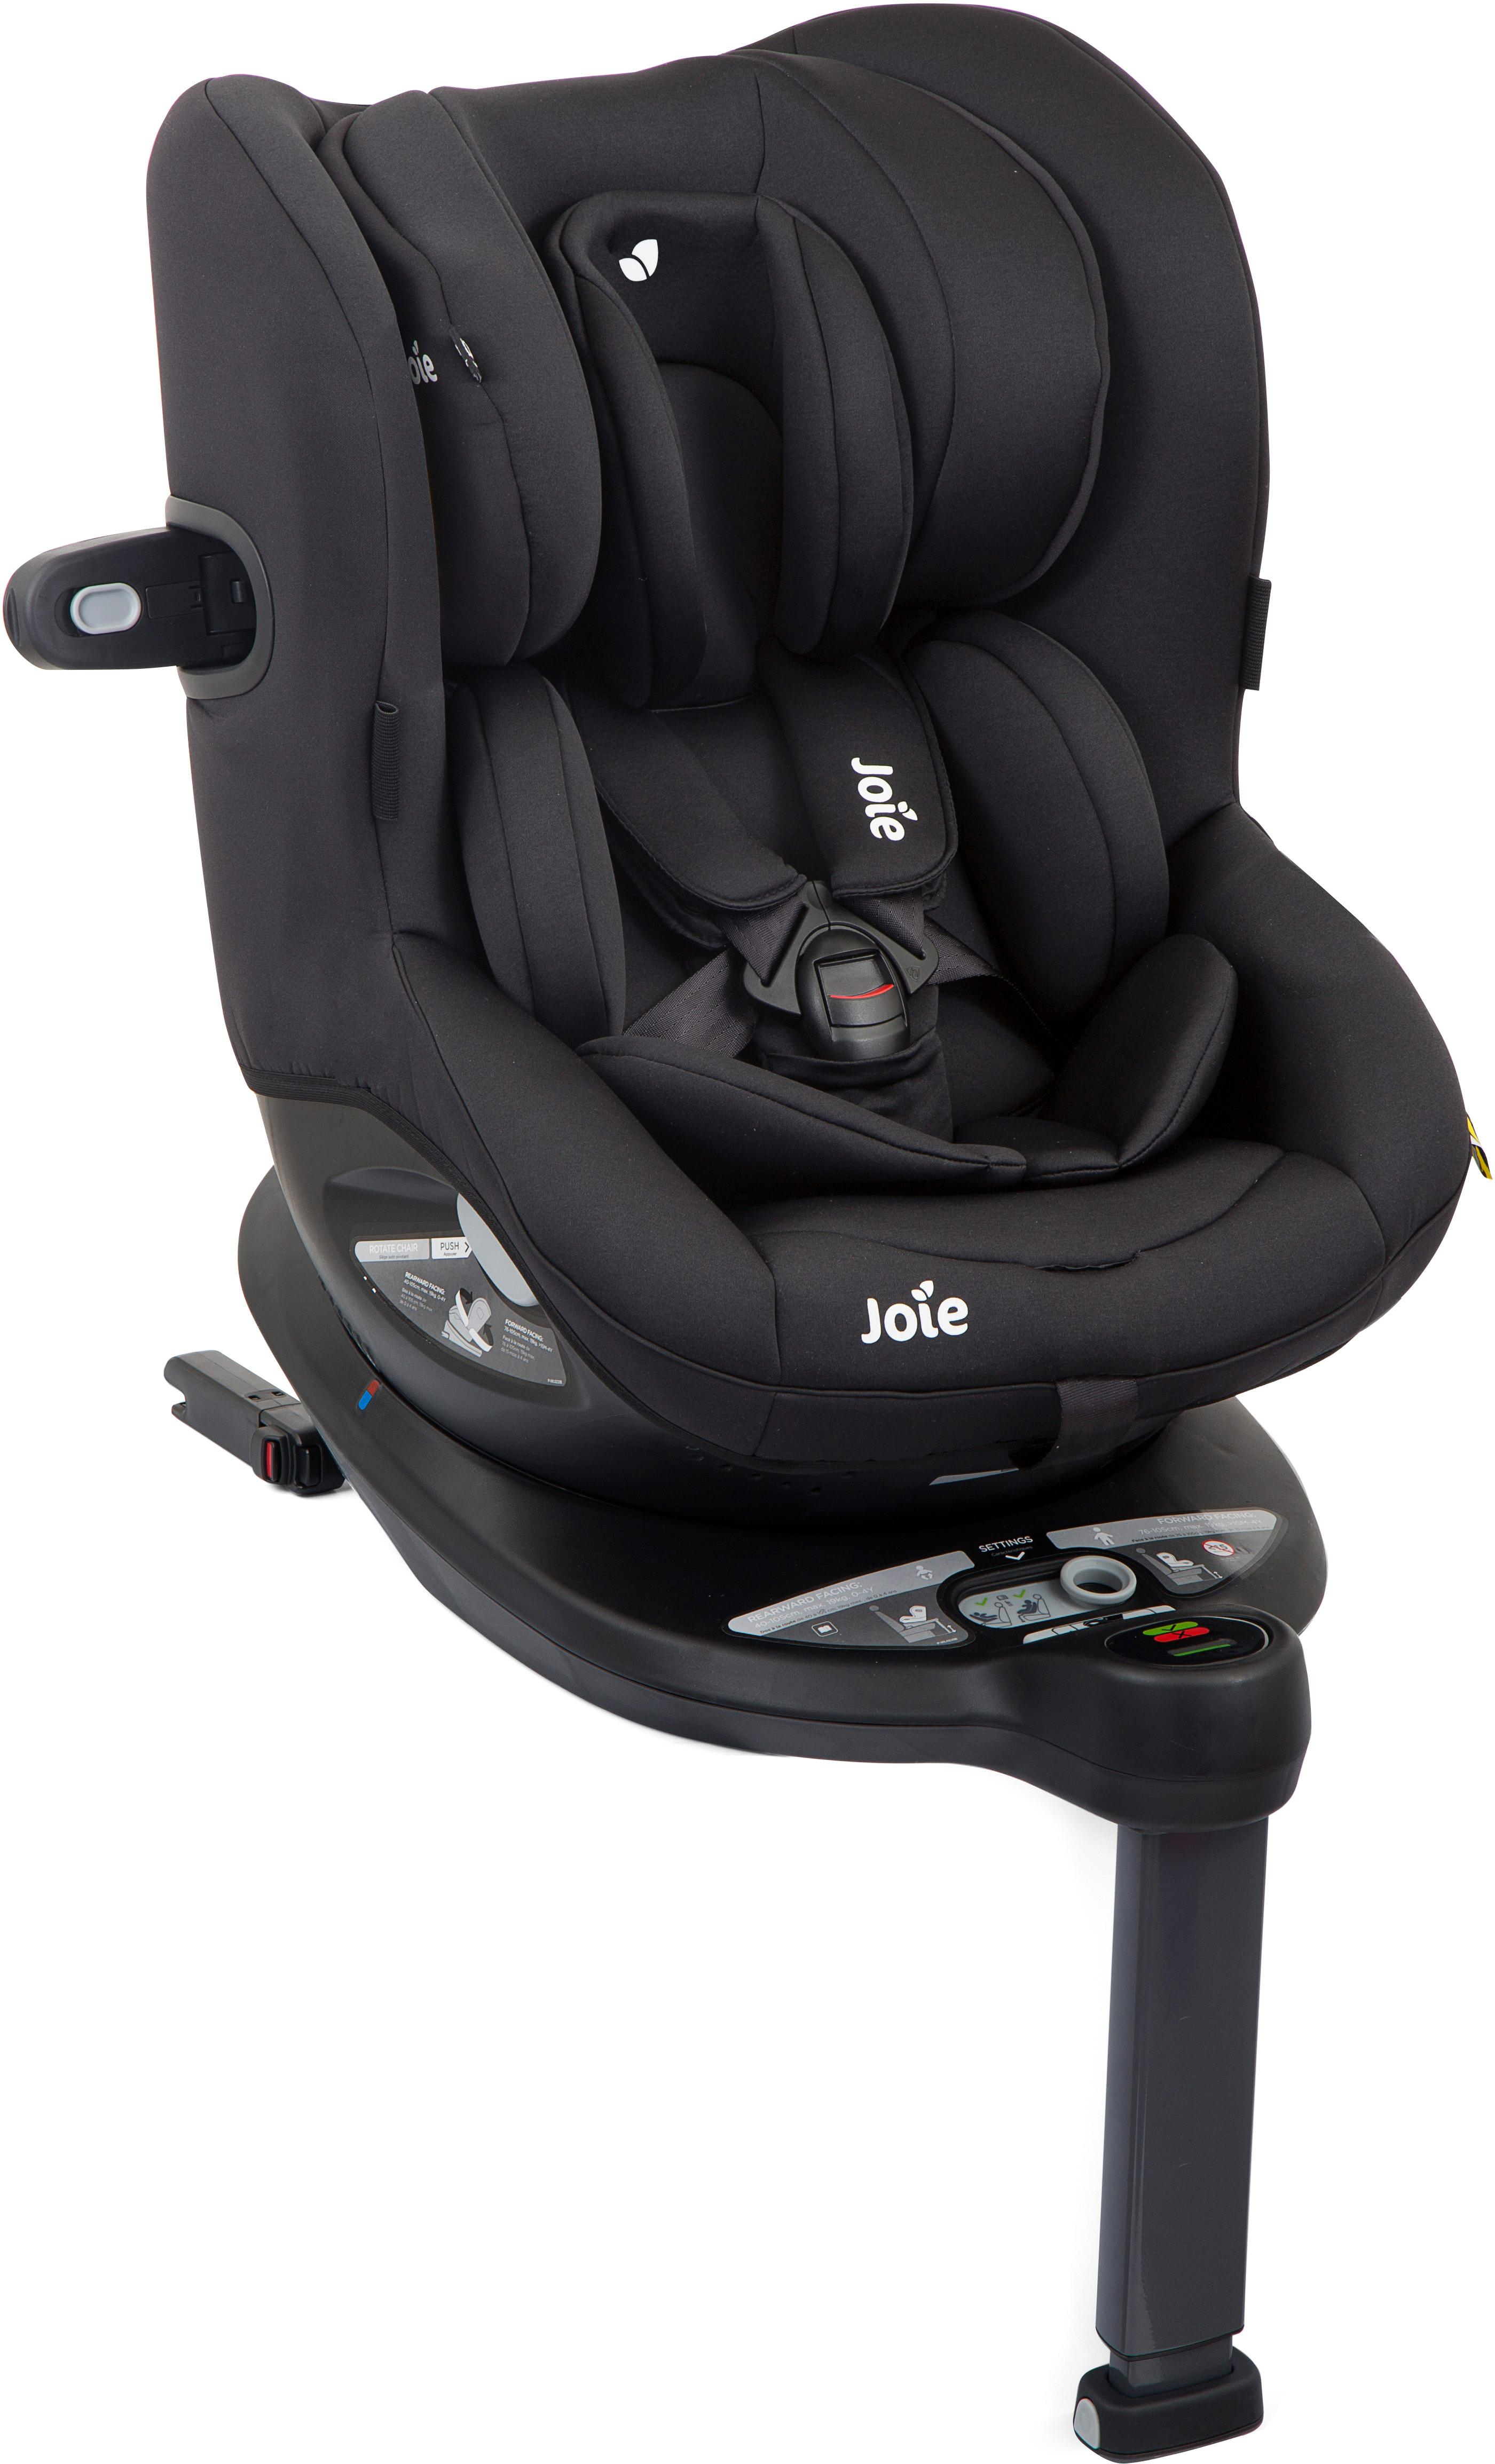 Joie Isofix Ebay Joie I Spin 360 Review Best All Round Car Seat 2019